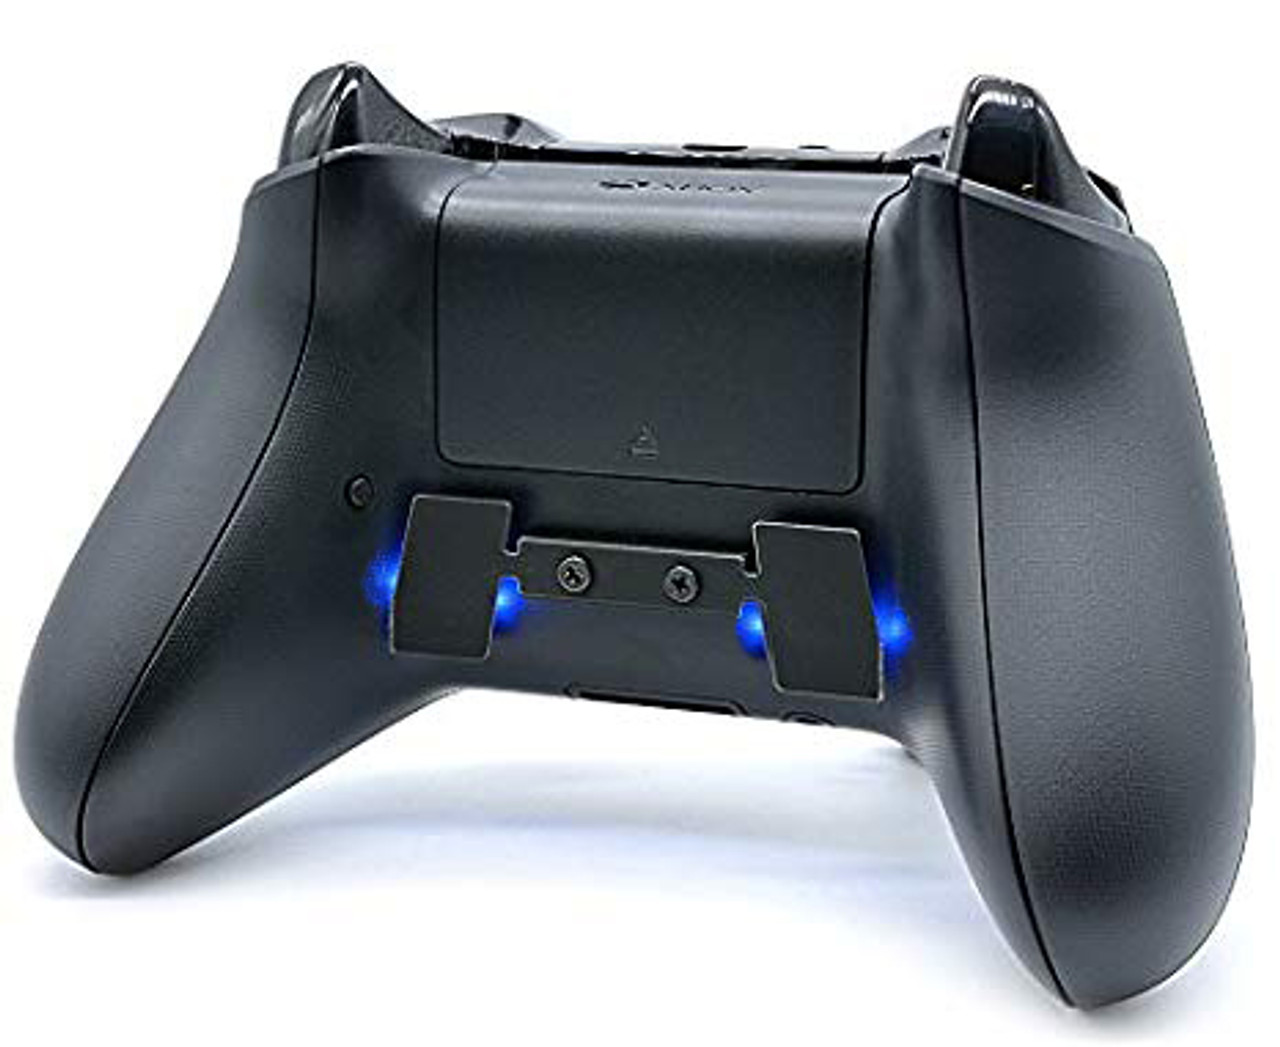 Xbox One controller with 2 button paddle and blue LEDs